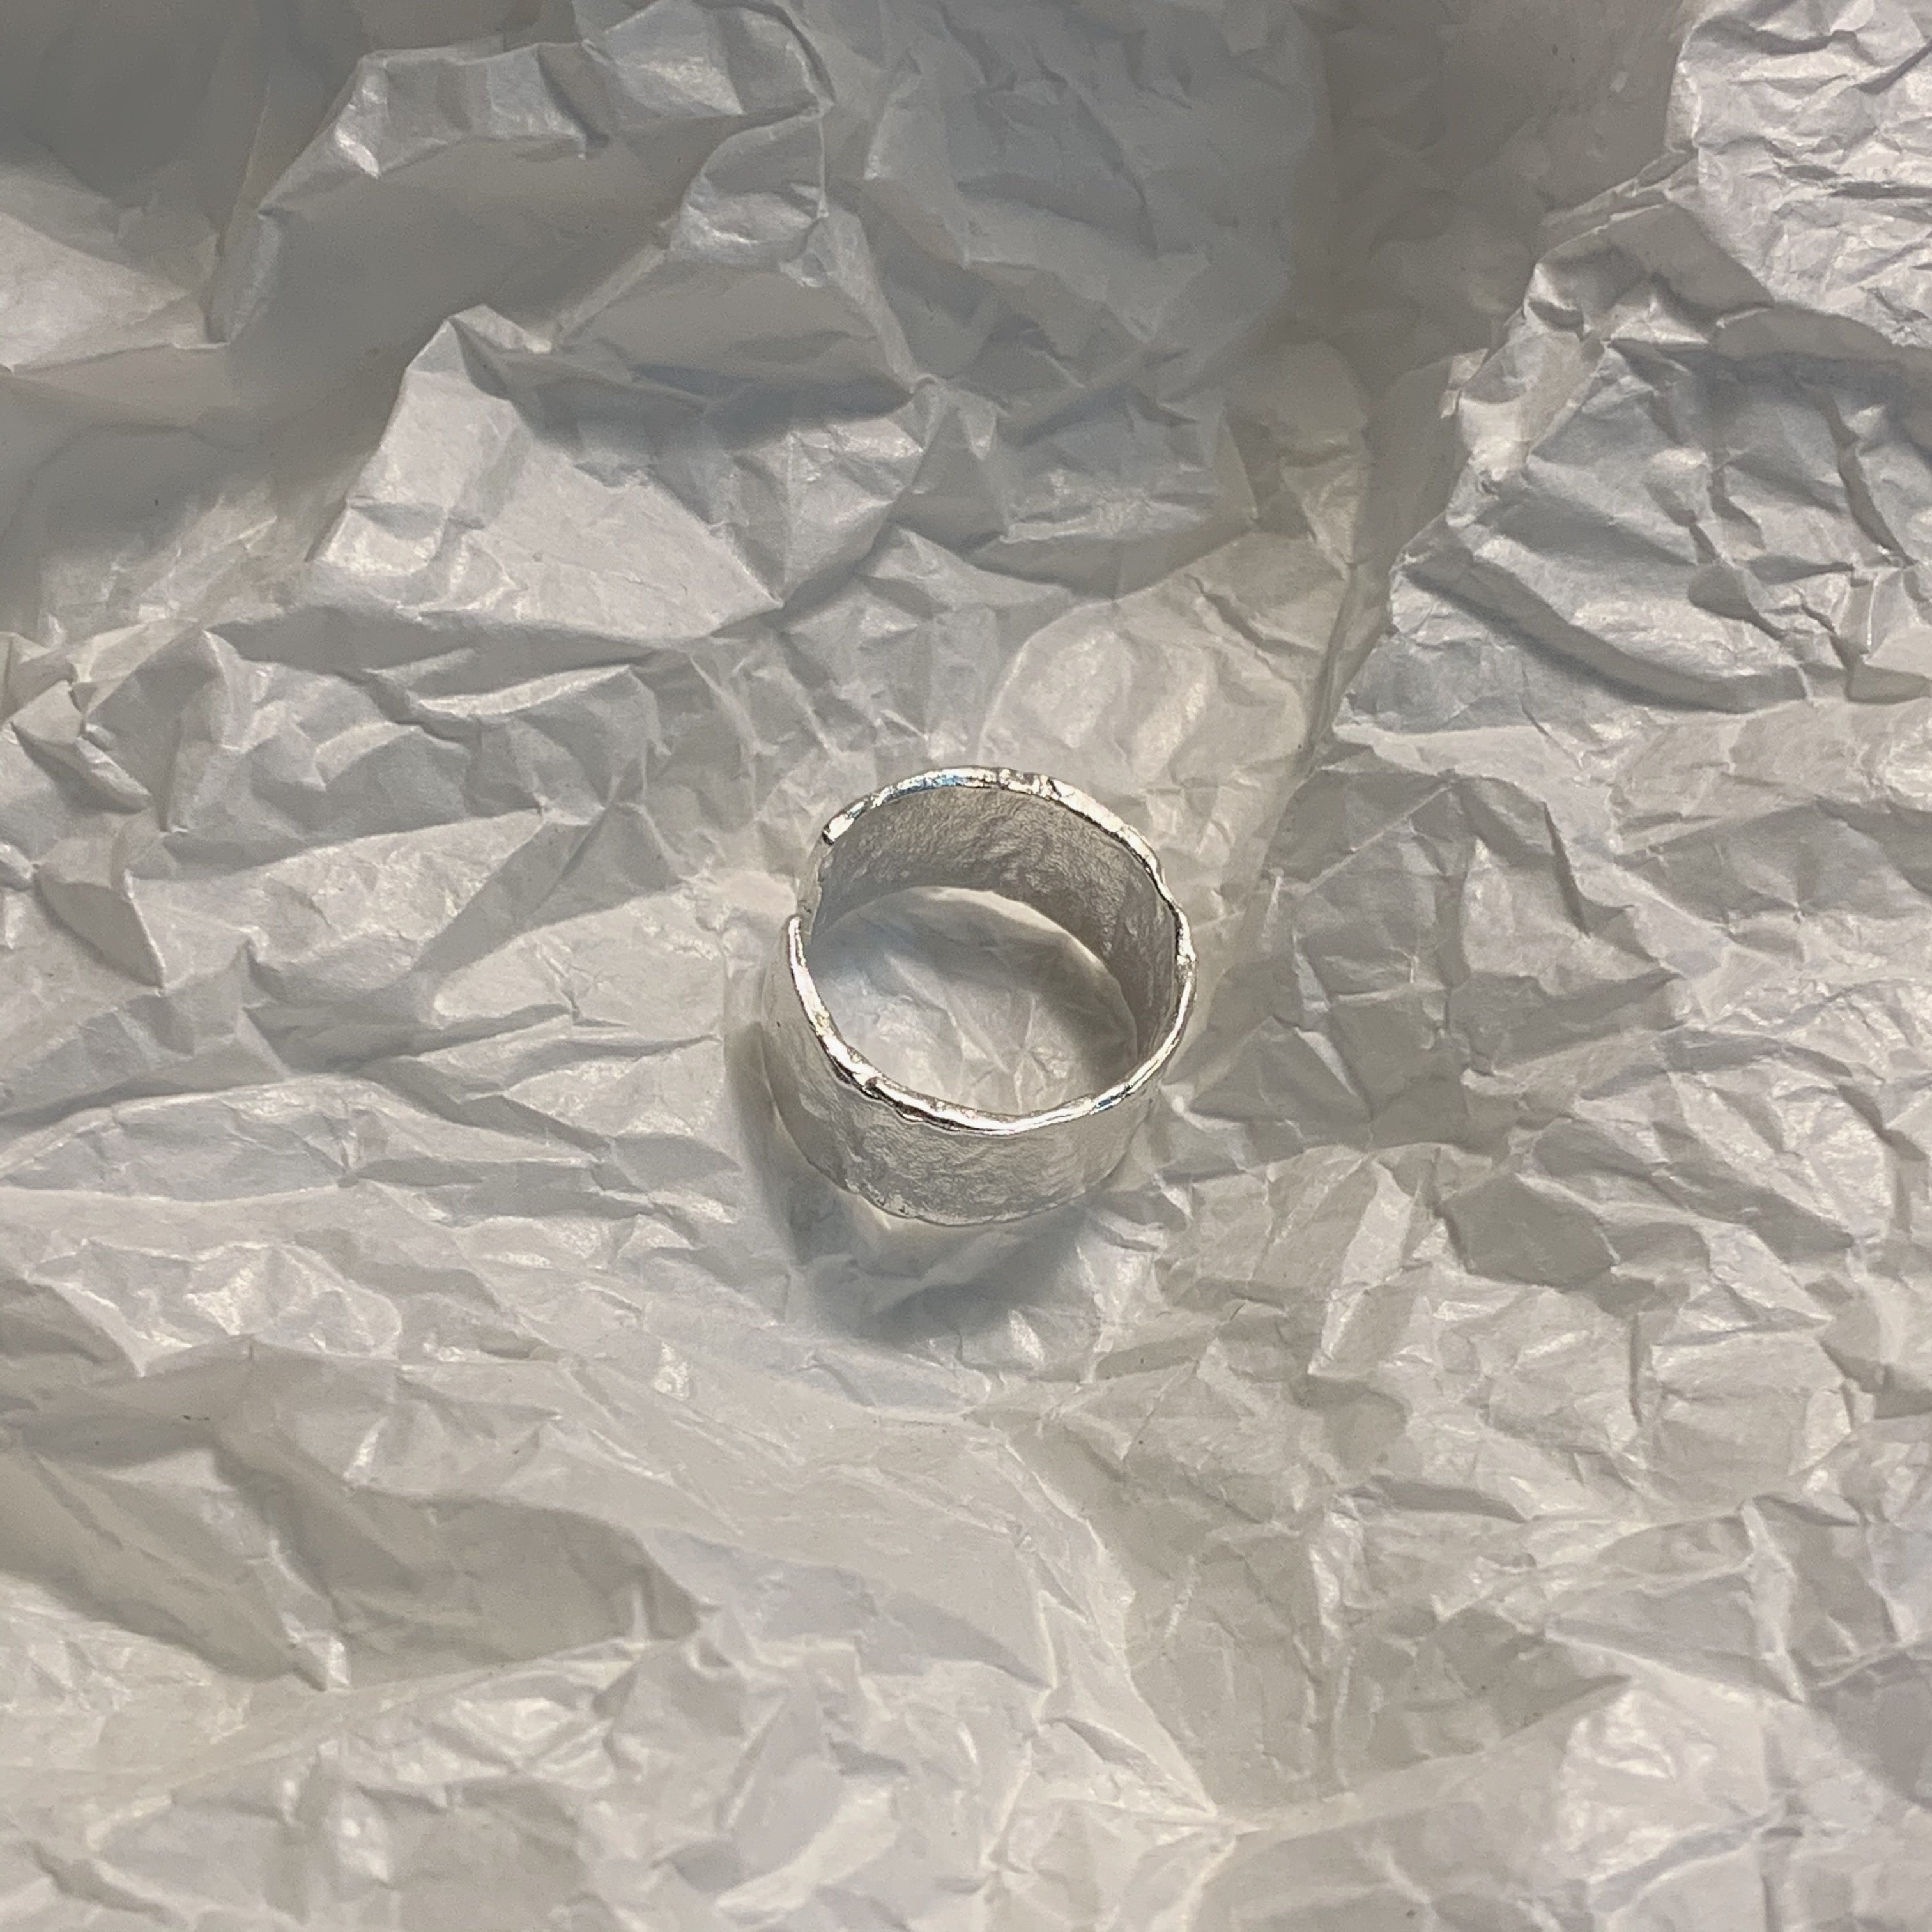 Tin foil wrinkled metal texture ring